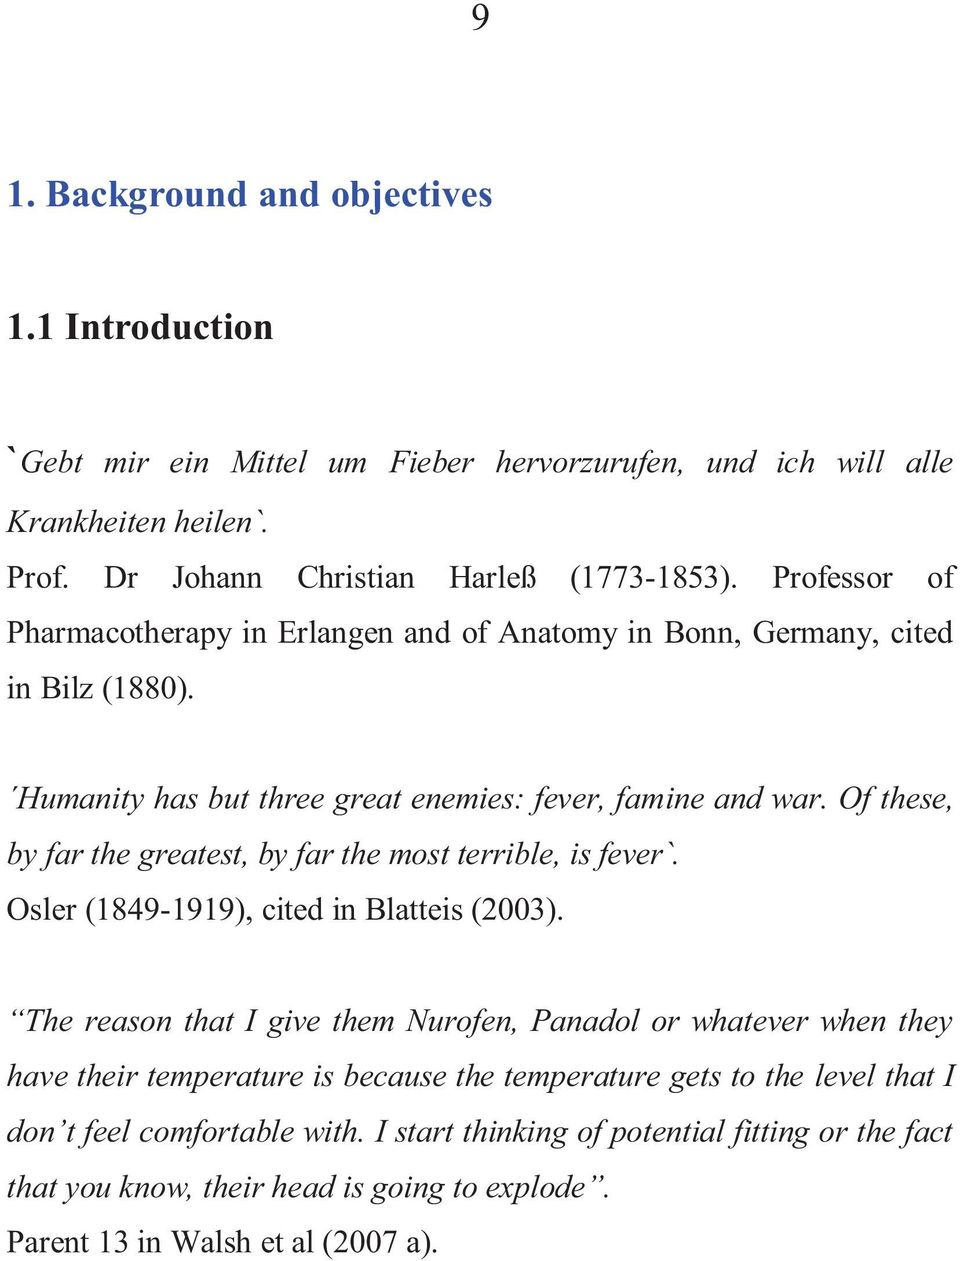 Of these, by far the greatest, by far the most terrible, is fever`. Osler (1849-1919), cited in Blatteis (2003).